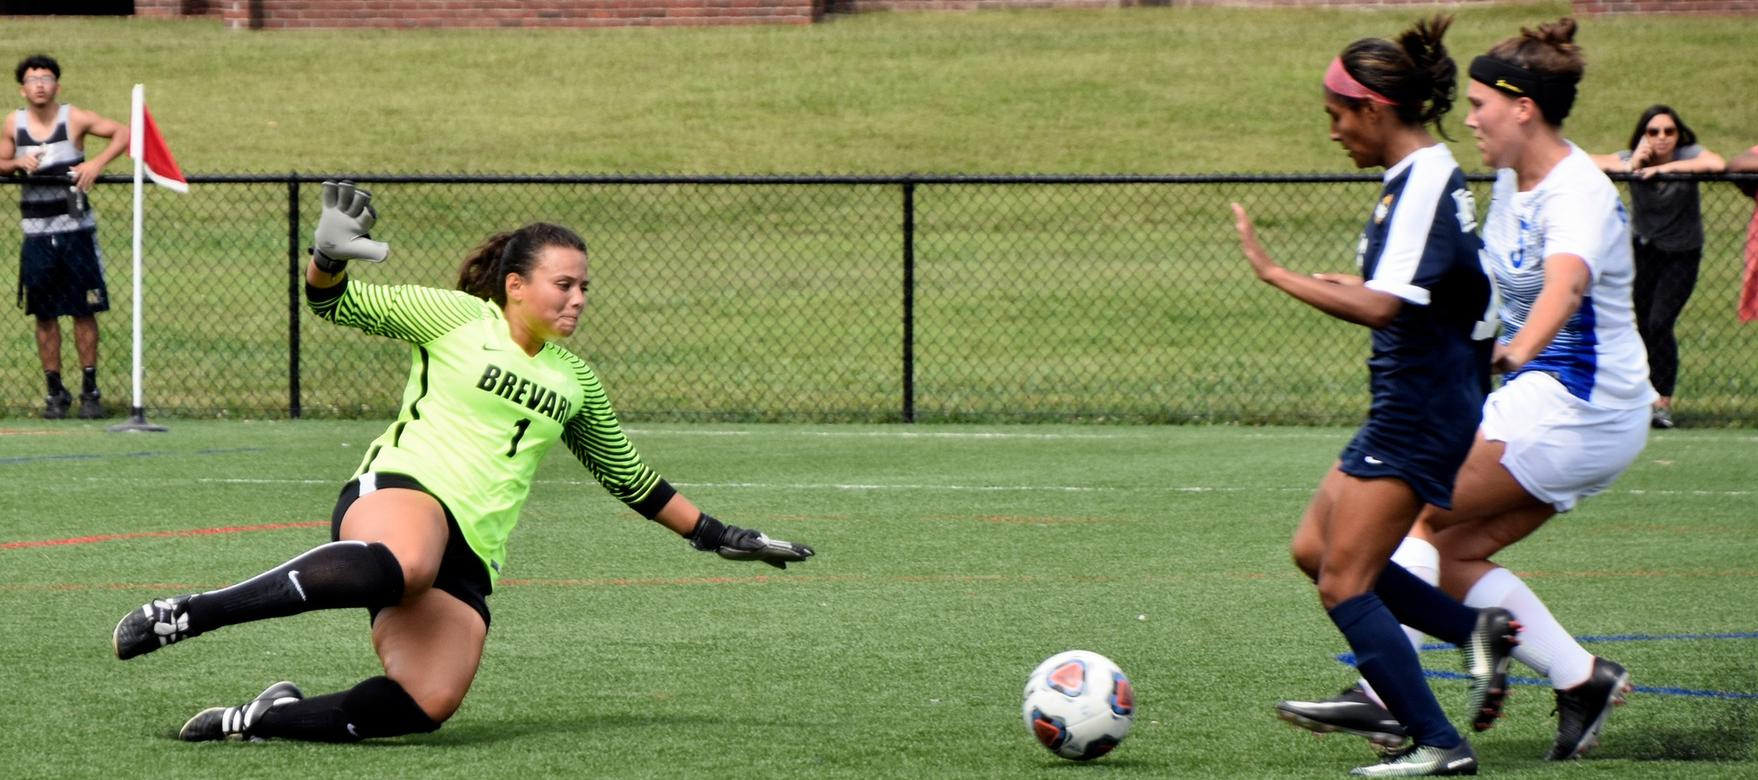 Rebeccah Rojas Picks Up USA South Defensive Player of the Week Honors